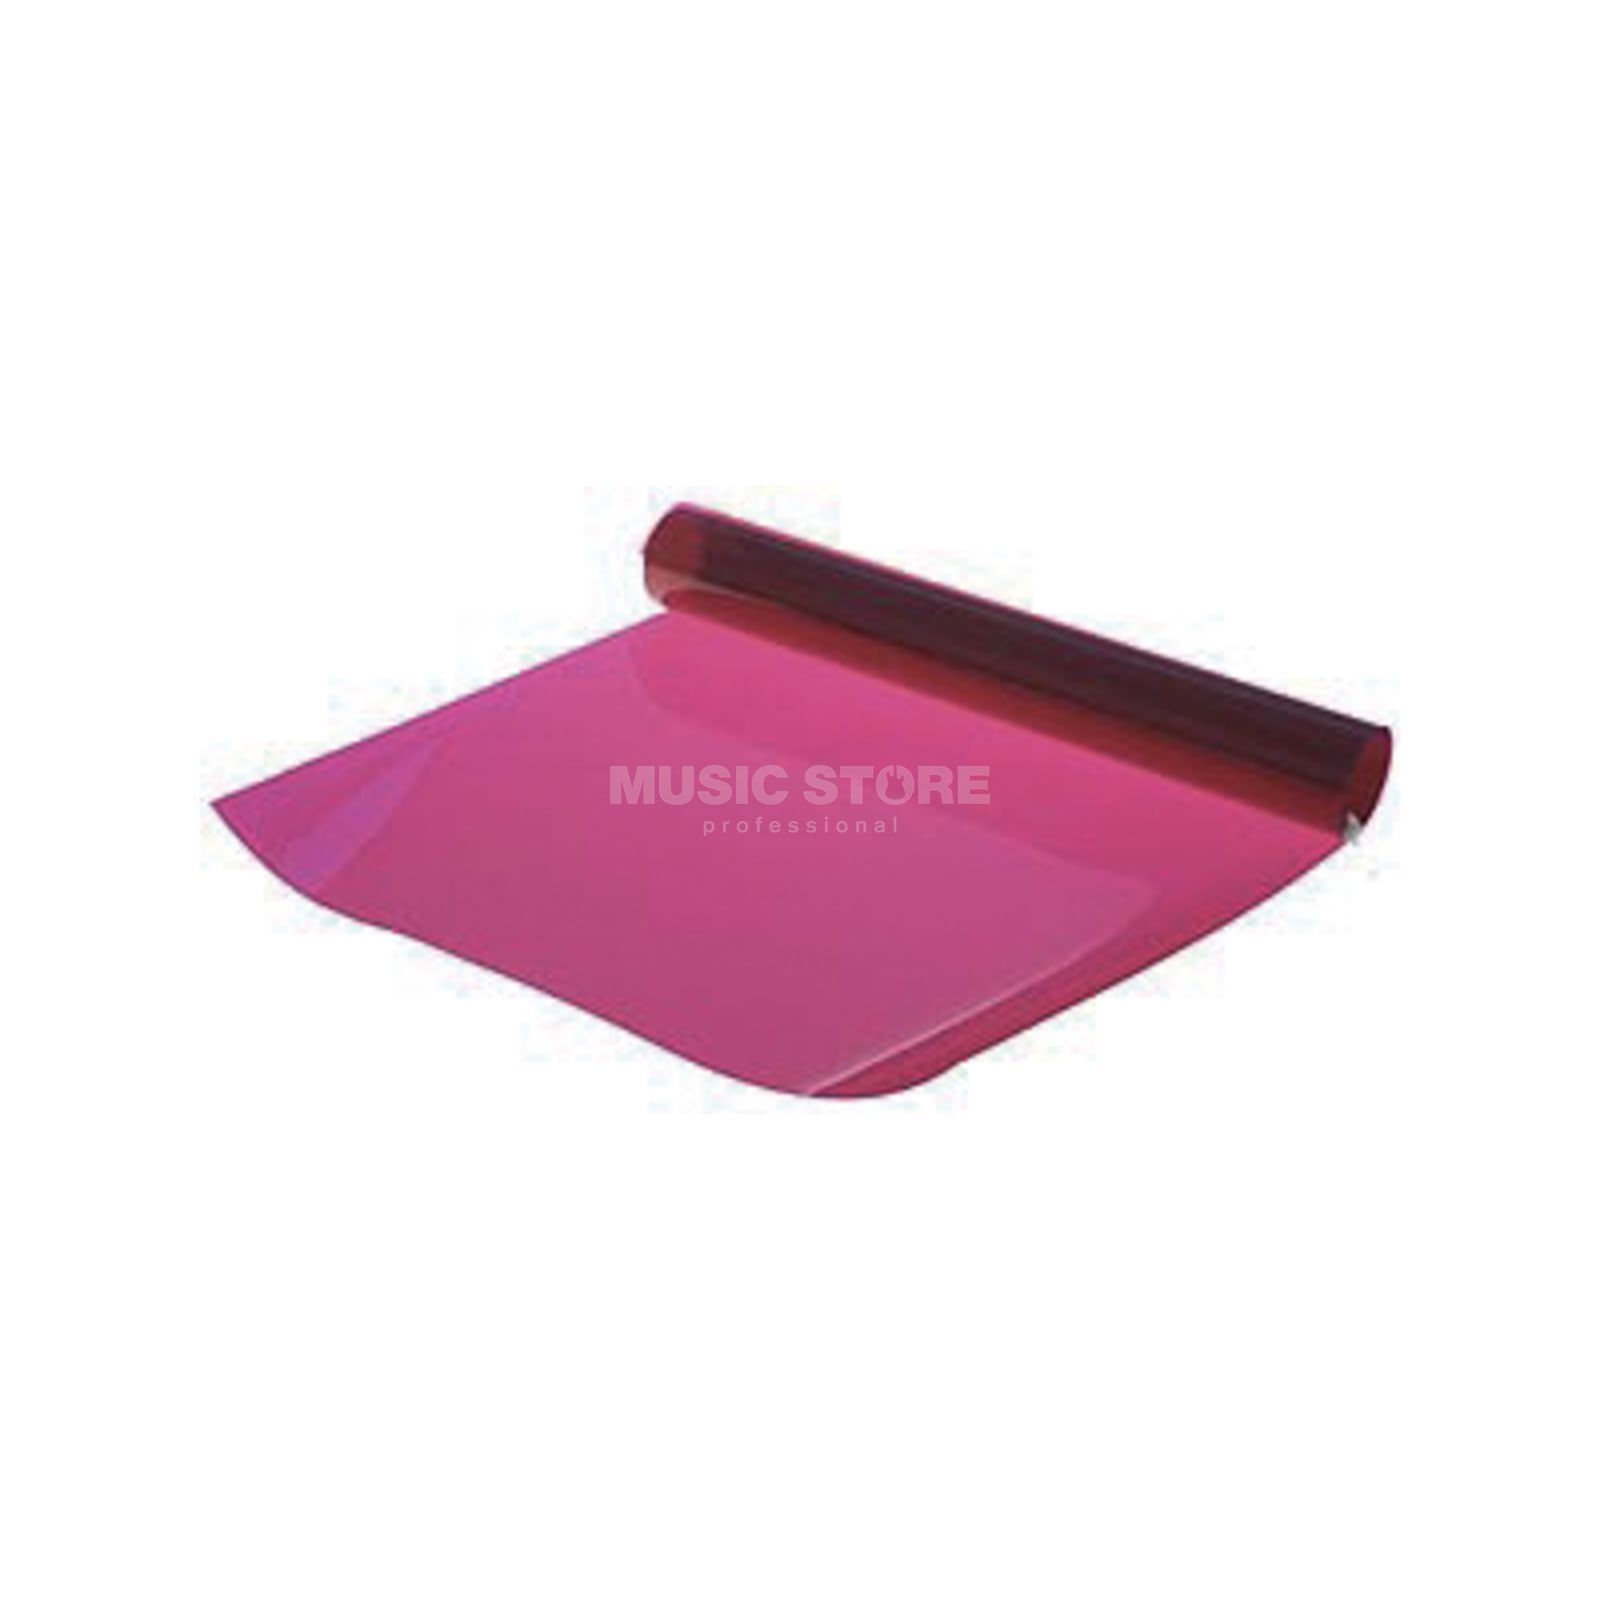 Lee 128 Farbfolie 50 x 122cm bright pink Product Image